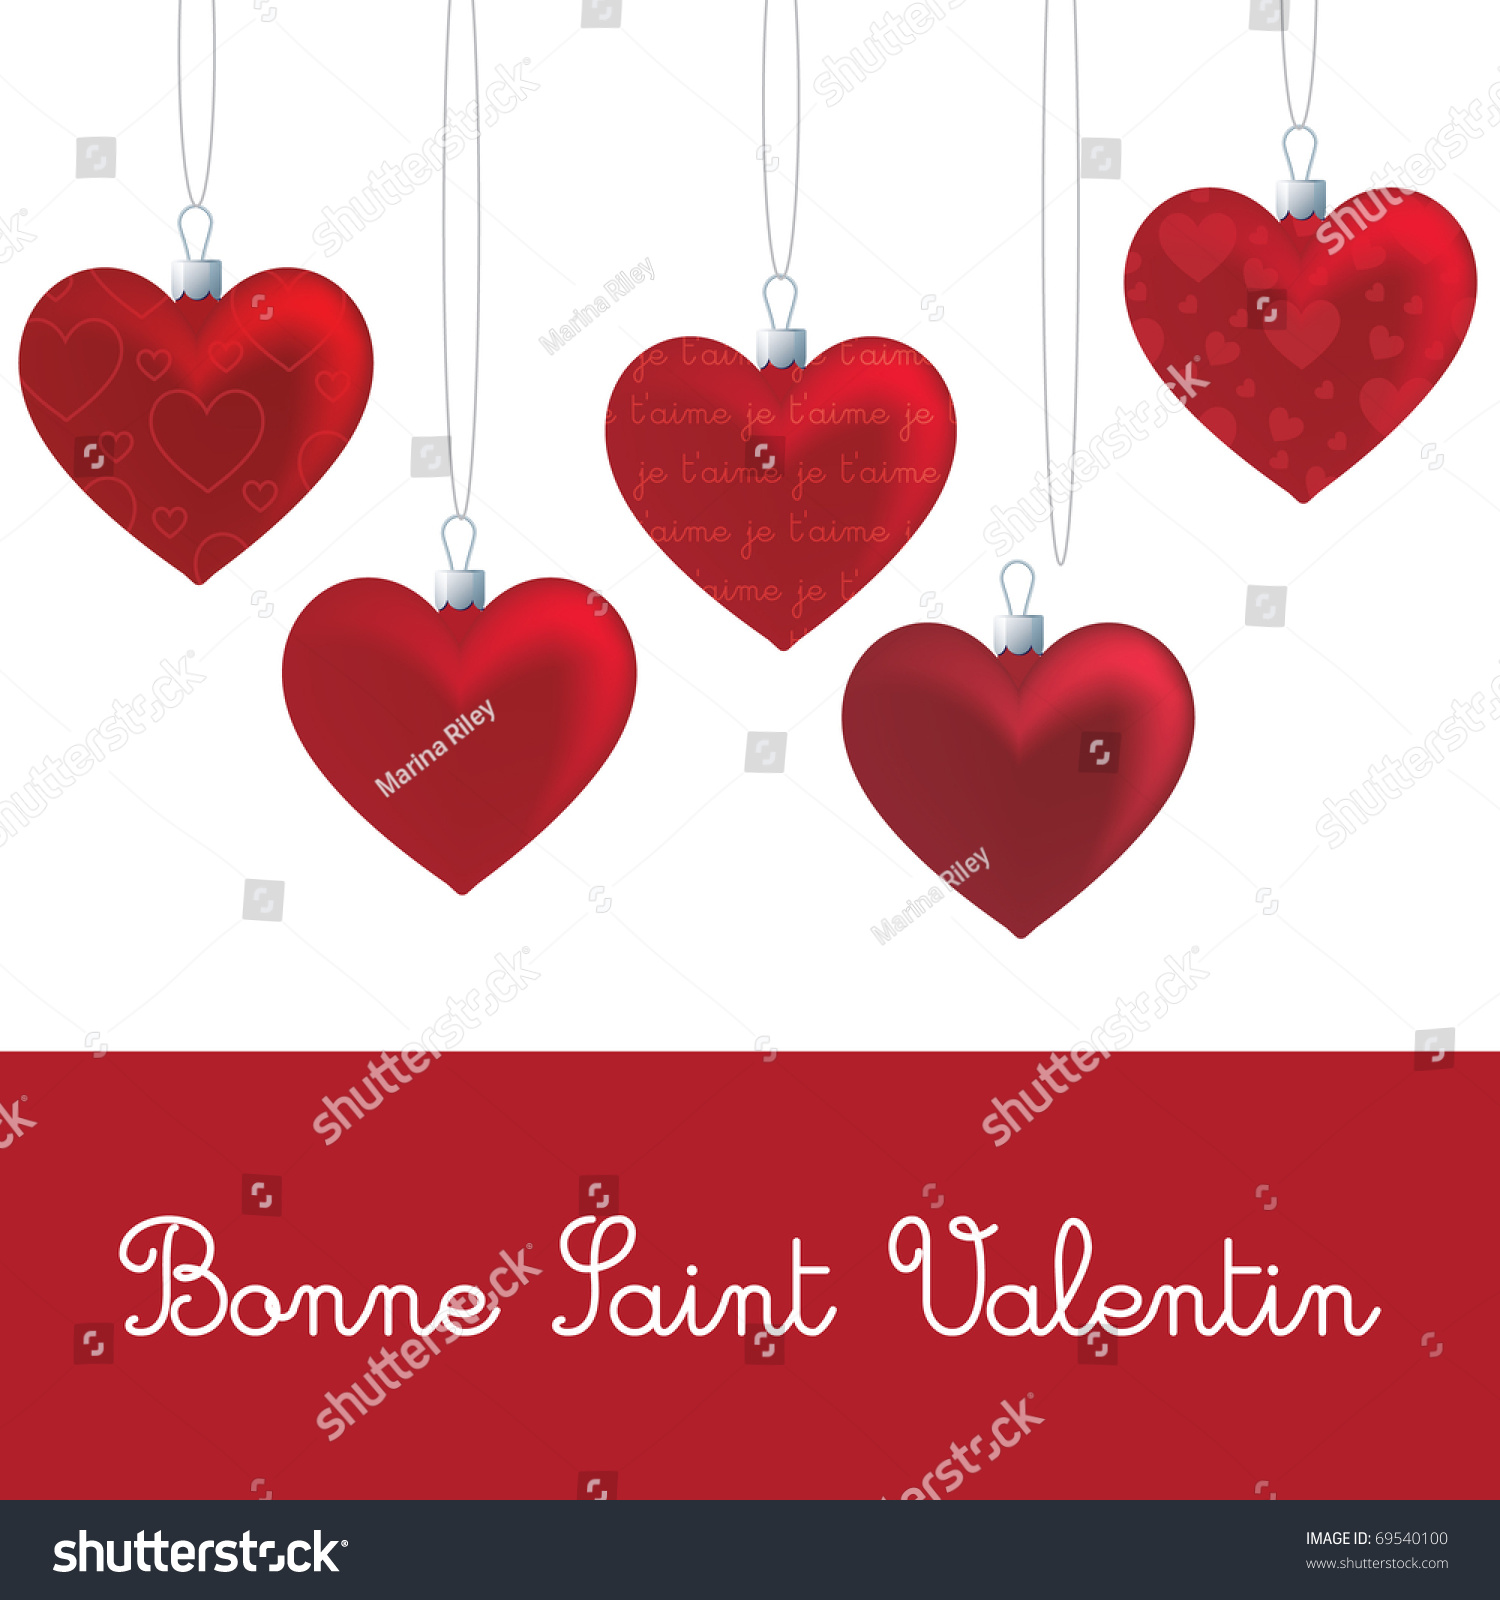 vector valentines day template in french - Valentines Day Template